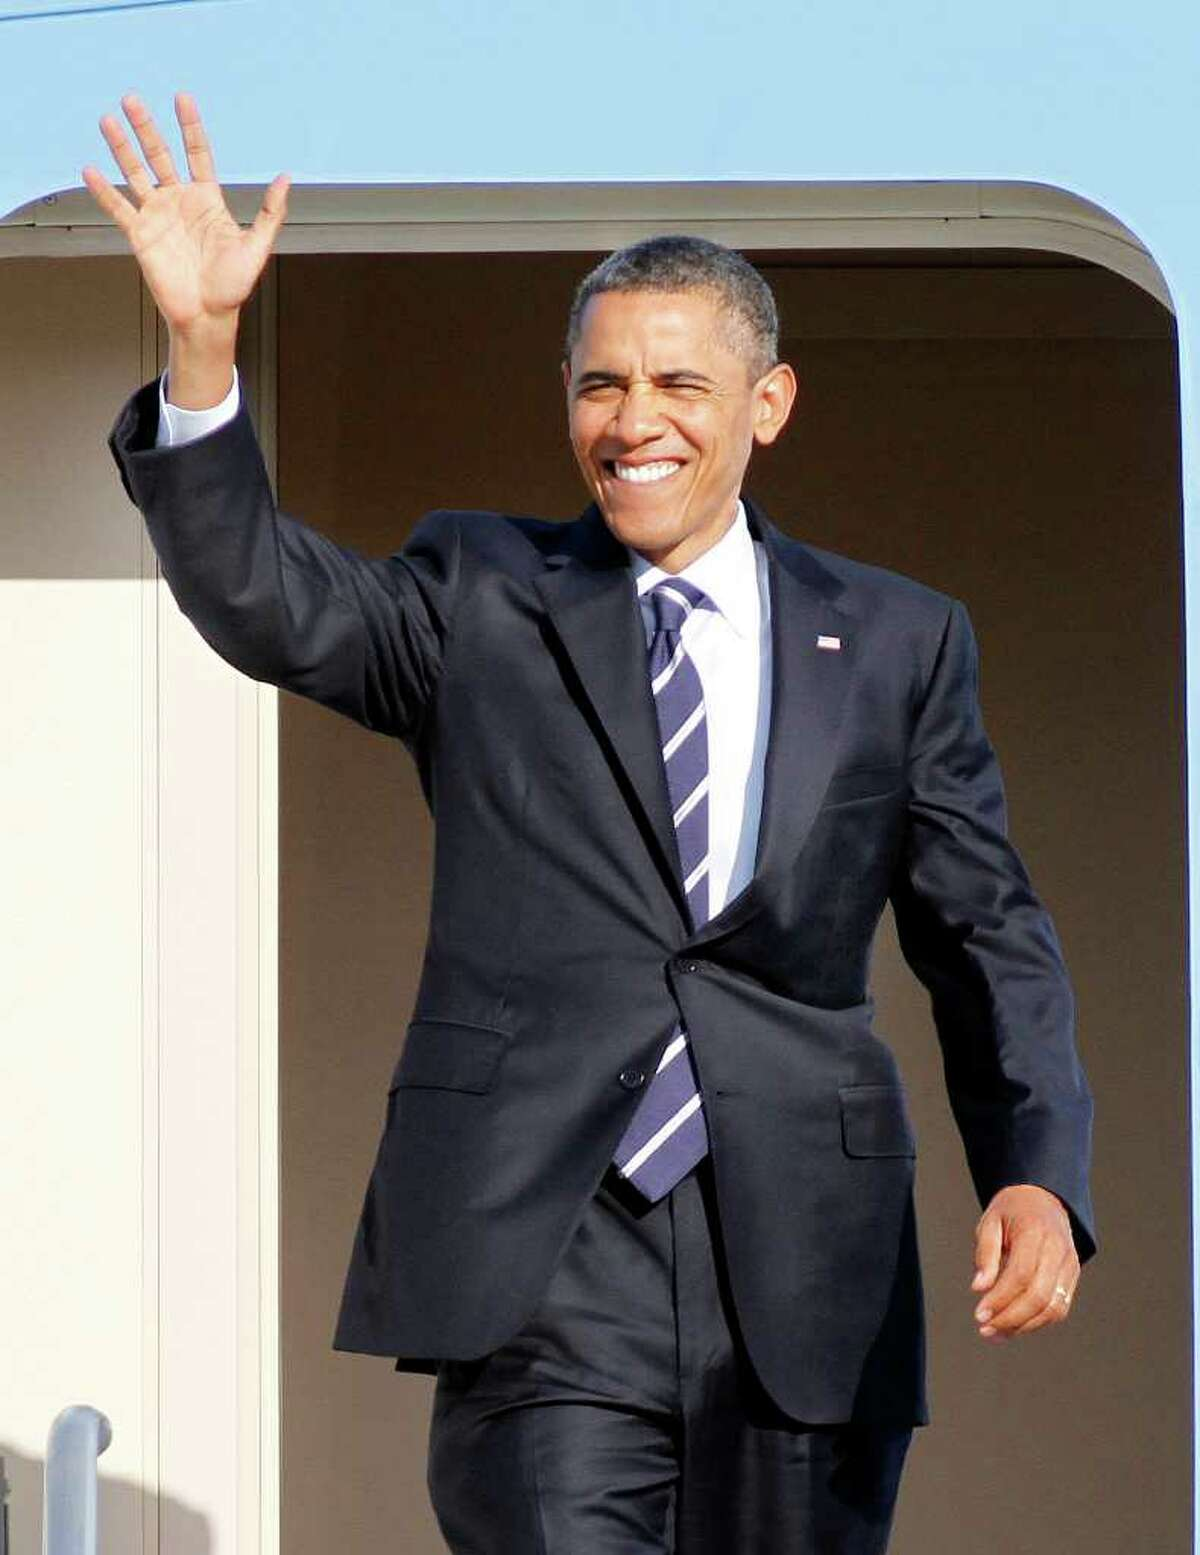 President Barack Obama waves from the stairs of Air Force One after arriving in Orlando, Fla., Tuesday, Oct. 11, 2011. (AP Photo/Reinhold Matay)